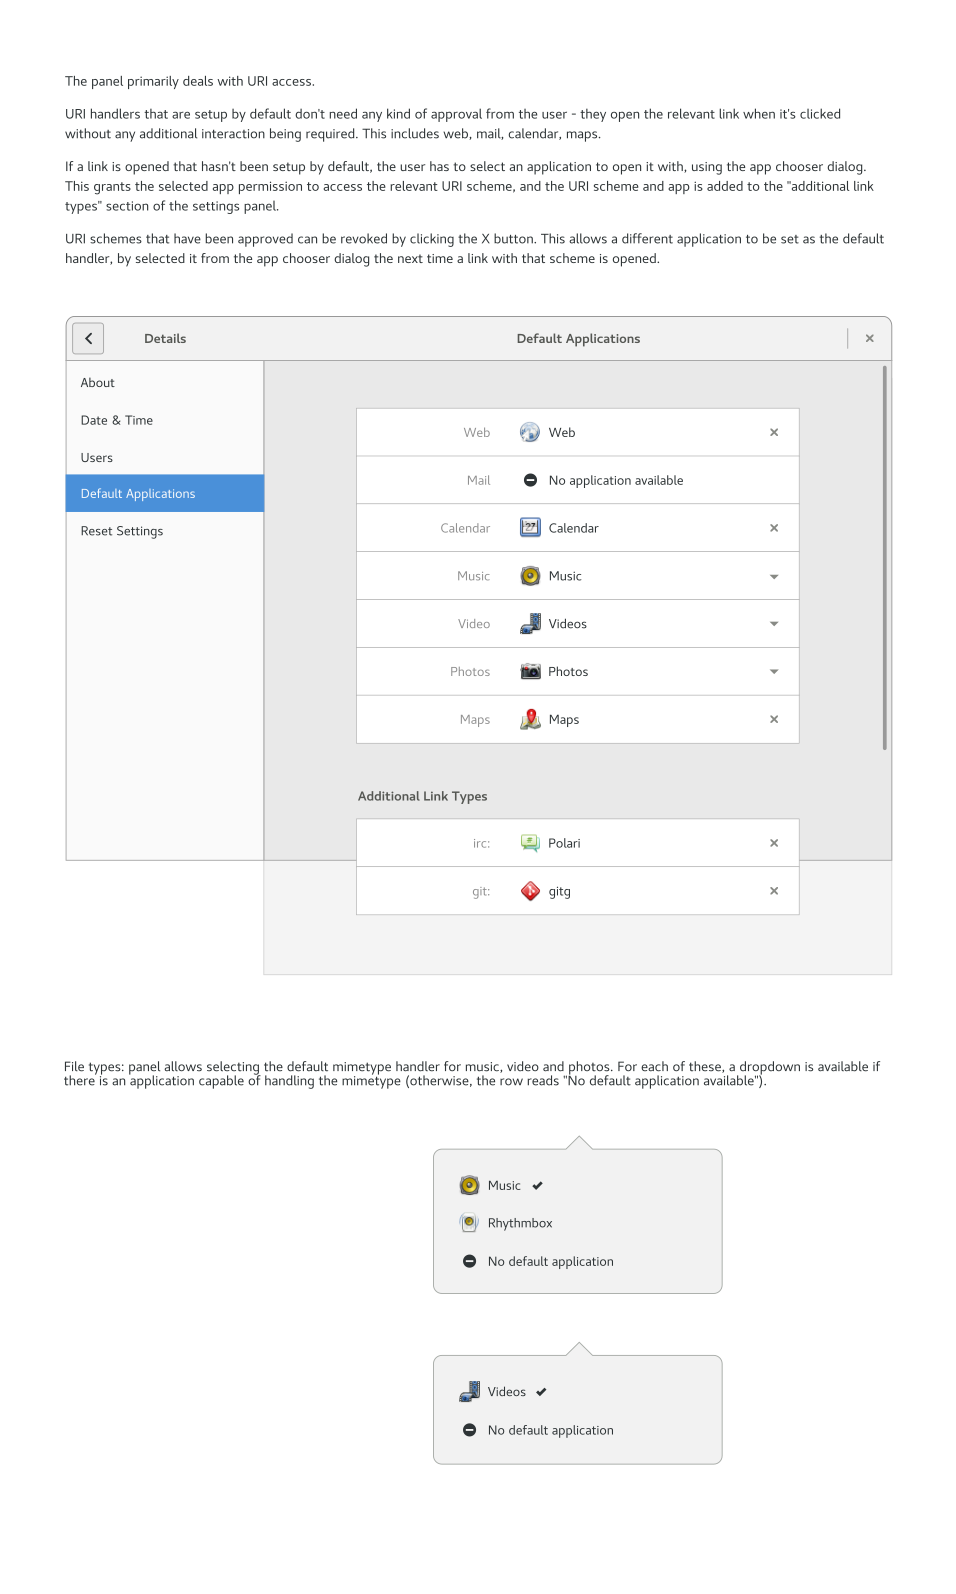 https://raw.githubusercontent.com/gnome-design-team/gnome-mockups/master/system-settings/default-applications/default-applications.png